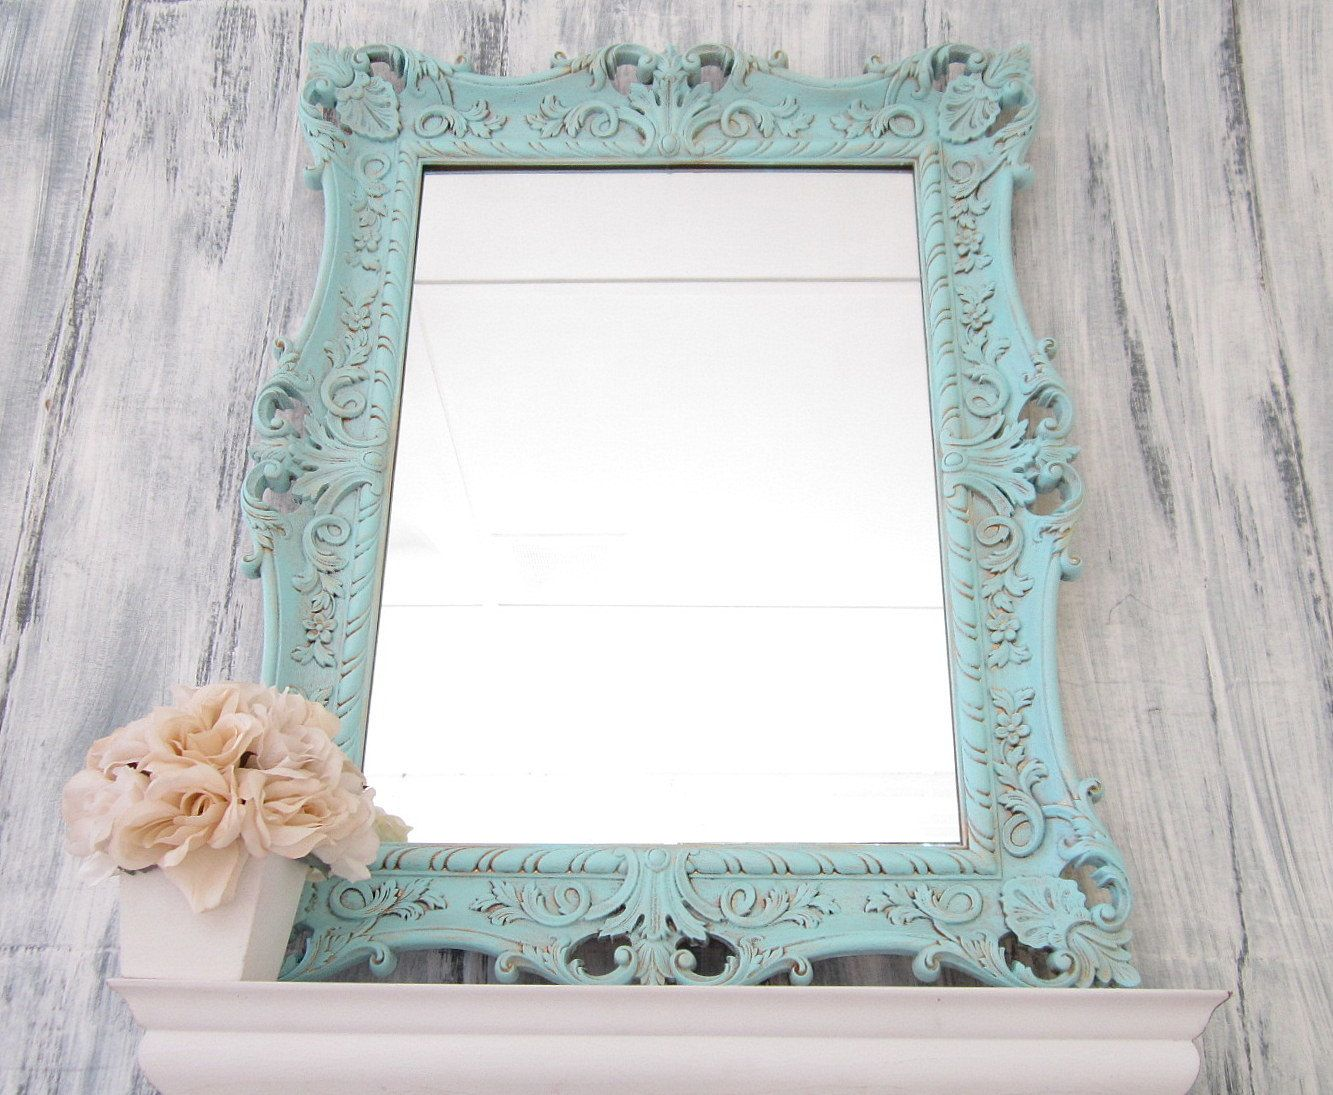 Decorative Bathroom Mirrors Sale Teal Blue Mirror French Country Home Mirror For Sale